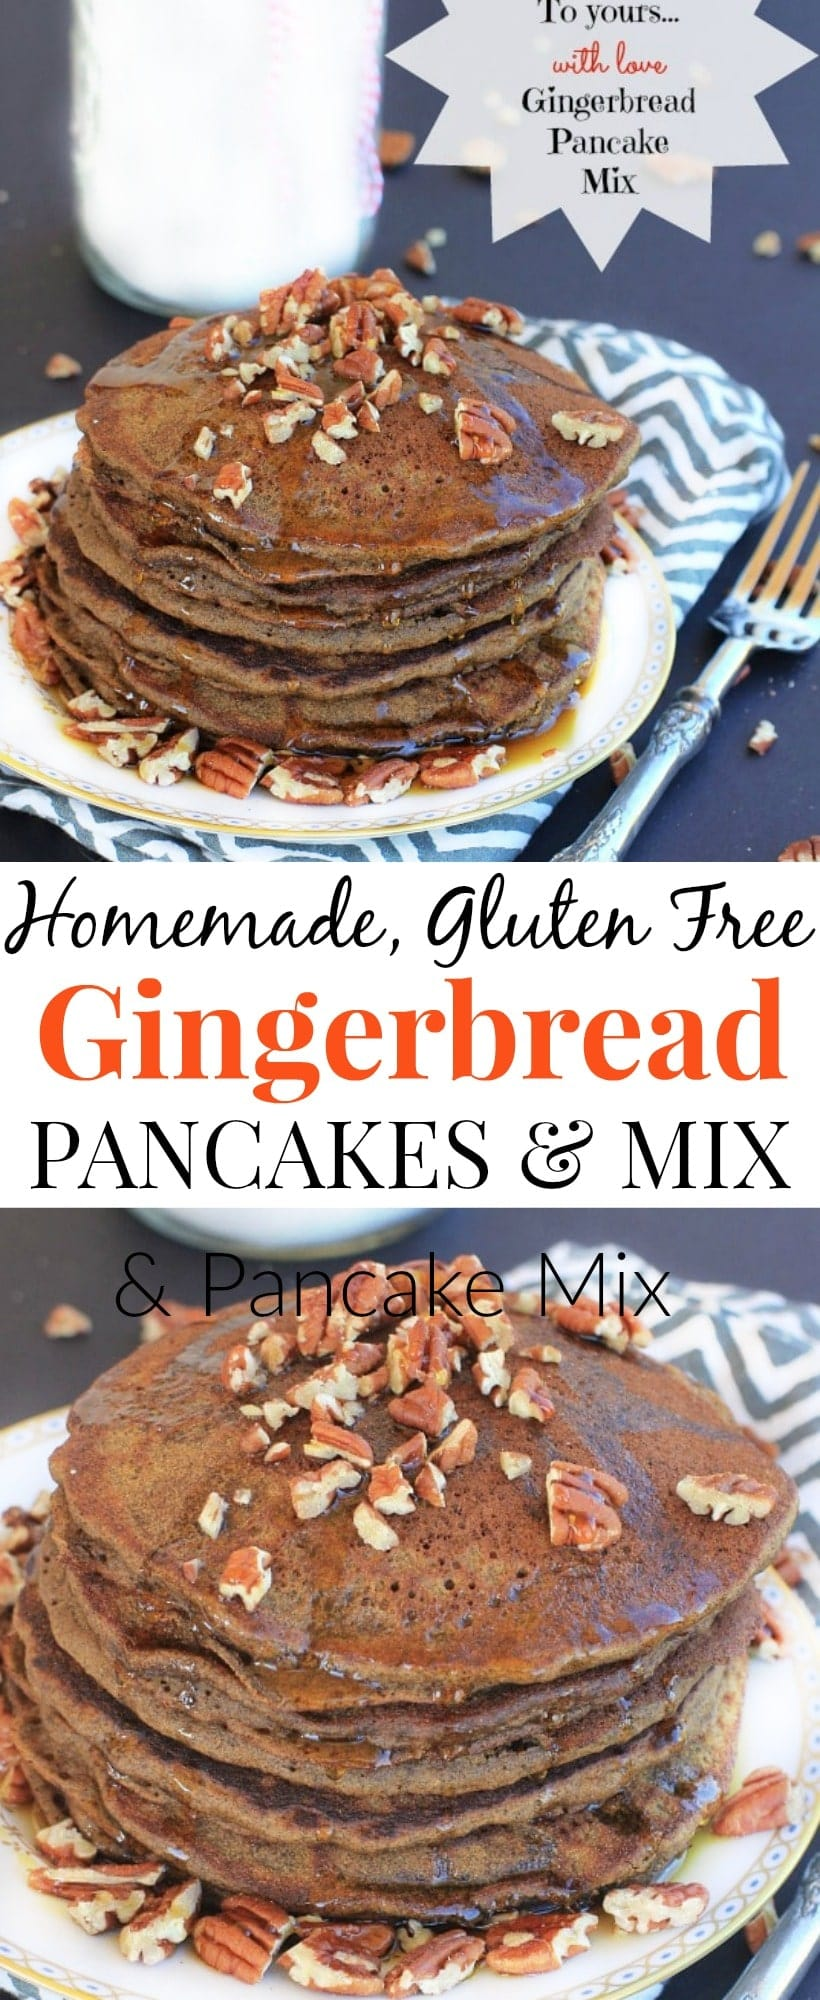 Homemade Gluten FreeGingerbread Pancakes & Gingerbread Pancake Mix| The most delicious gift to give this holiday season! #GlutenFree #Gingerbread #Gift #LowFODMAP #Holidays